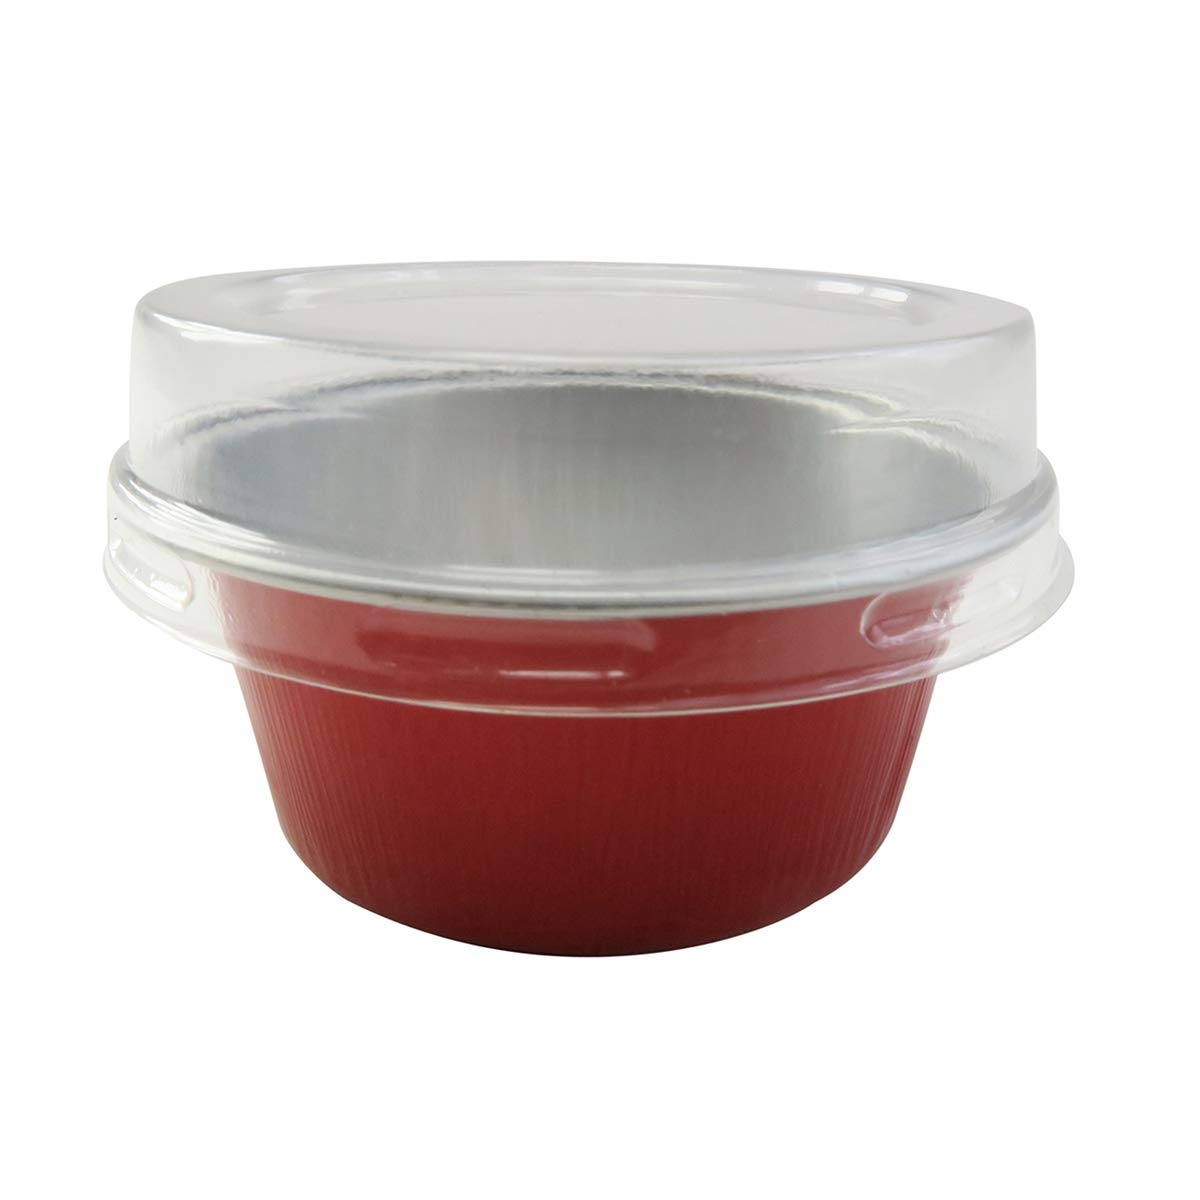 KitchenDance Disposable Aluminum Mini Baking Cups/Dessert Cups- 1-1/2 oz Capacity- Pack of 100 (With Lids, Red)